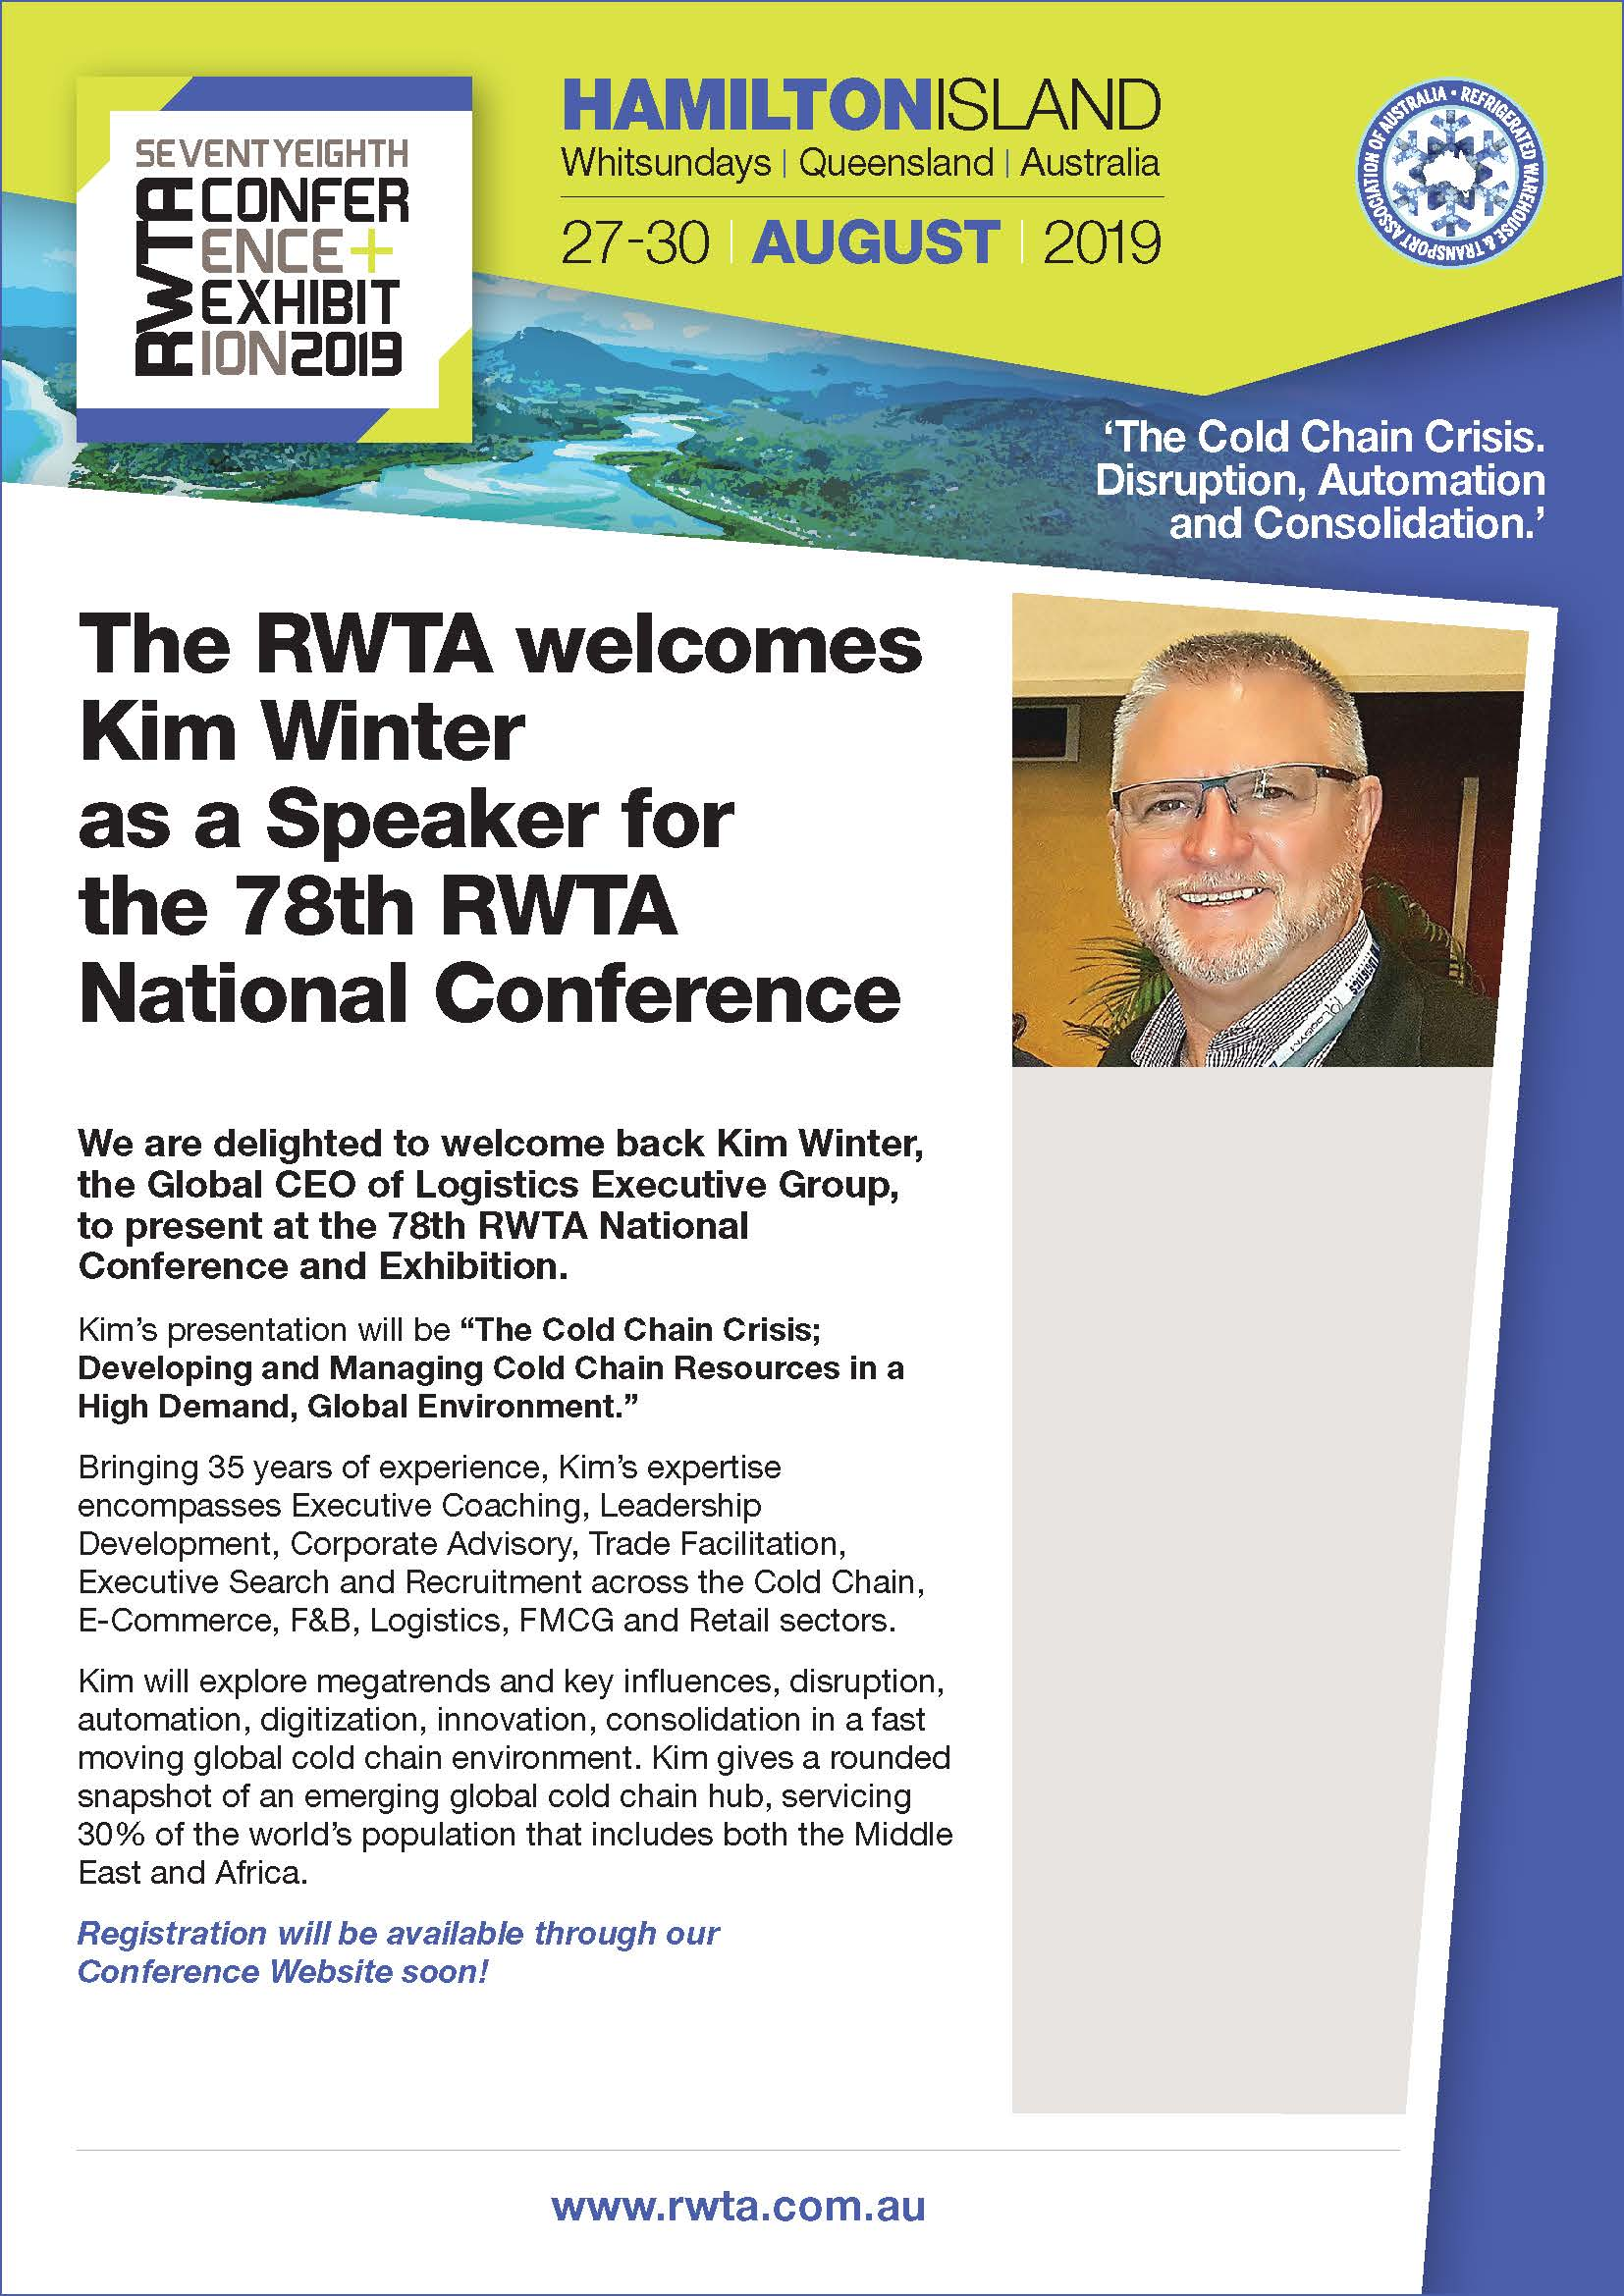 The RWTA welcomes Kim Winter as a Speaker for the 78th RWTA